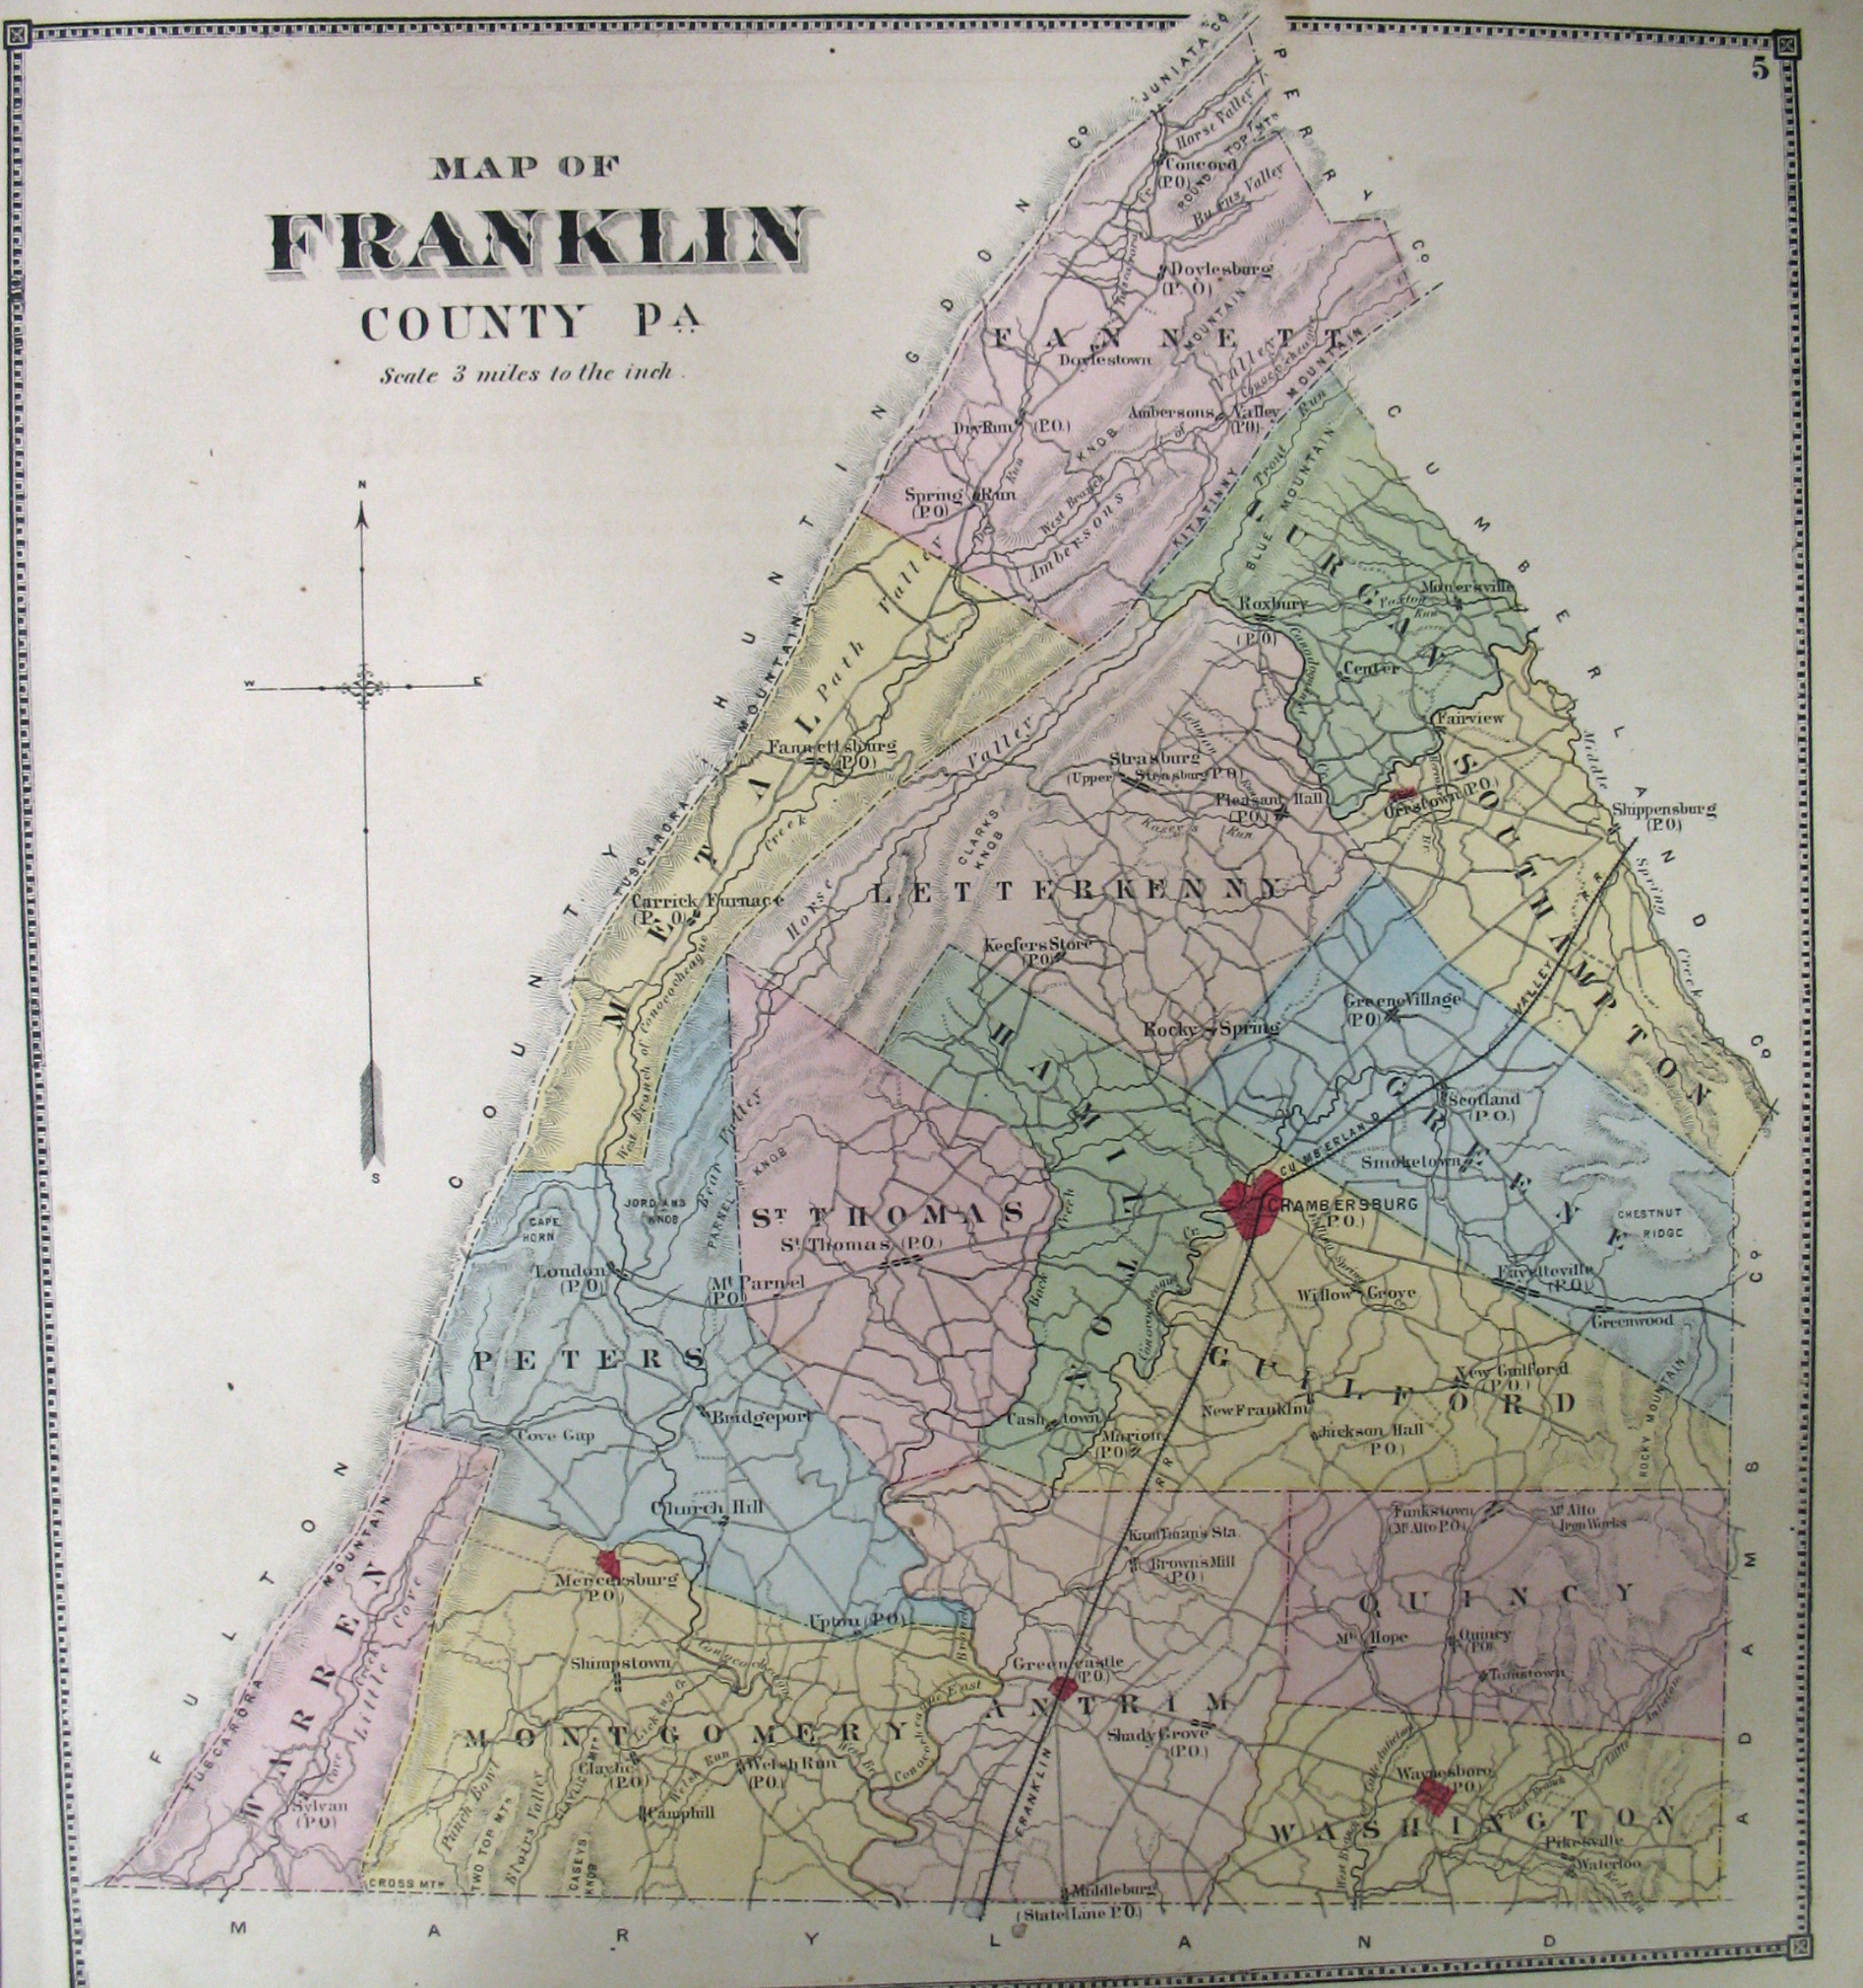 Franklin Co  Atlas  1868 Franklin County  1868  Township Maps